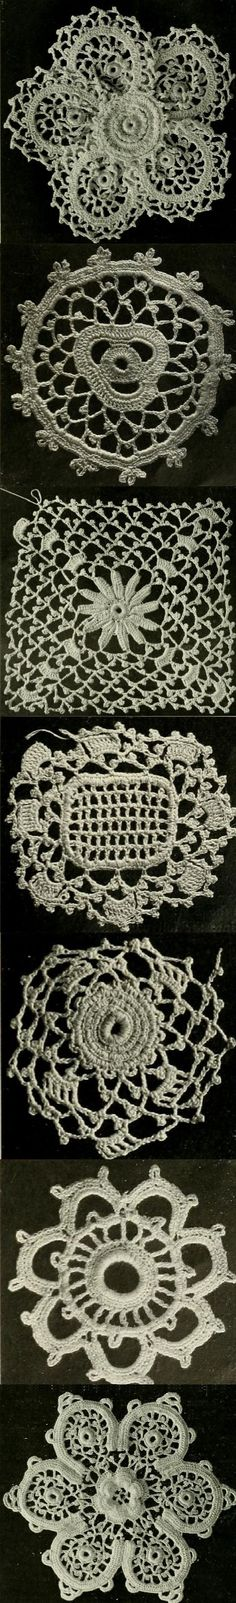 BOOK  Learn baby Irish crochet lace in this book from 1930! #Irish #Crochet #Lace